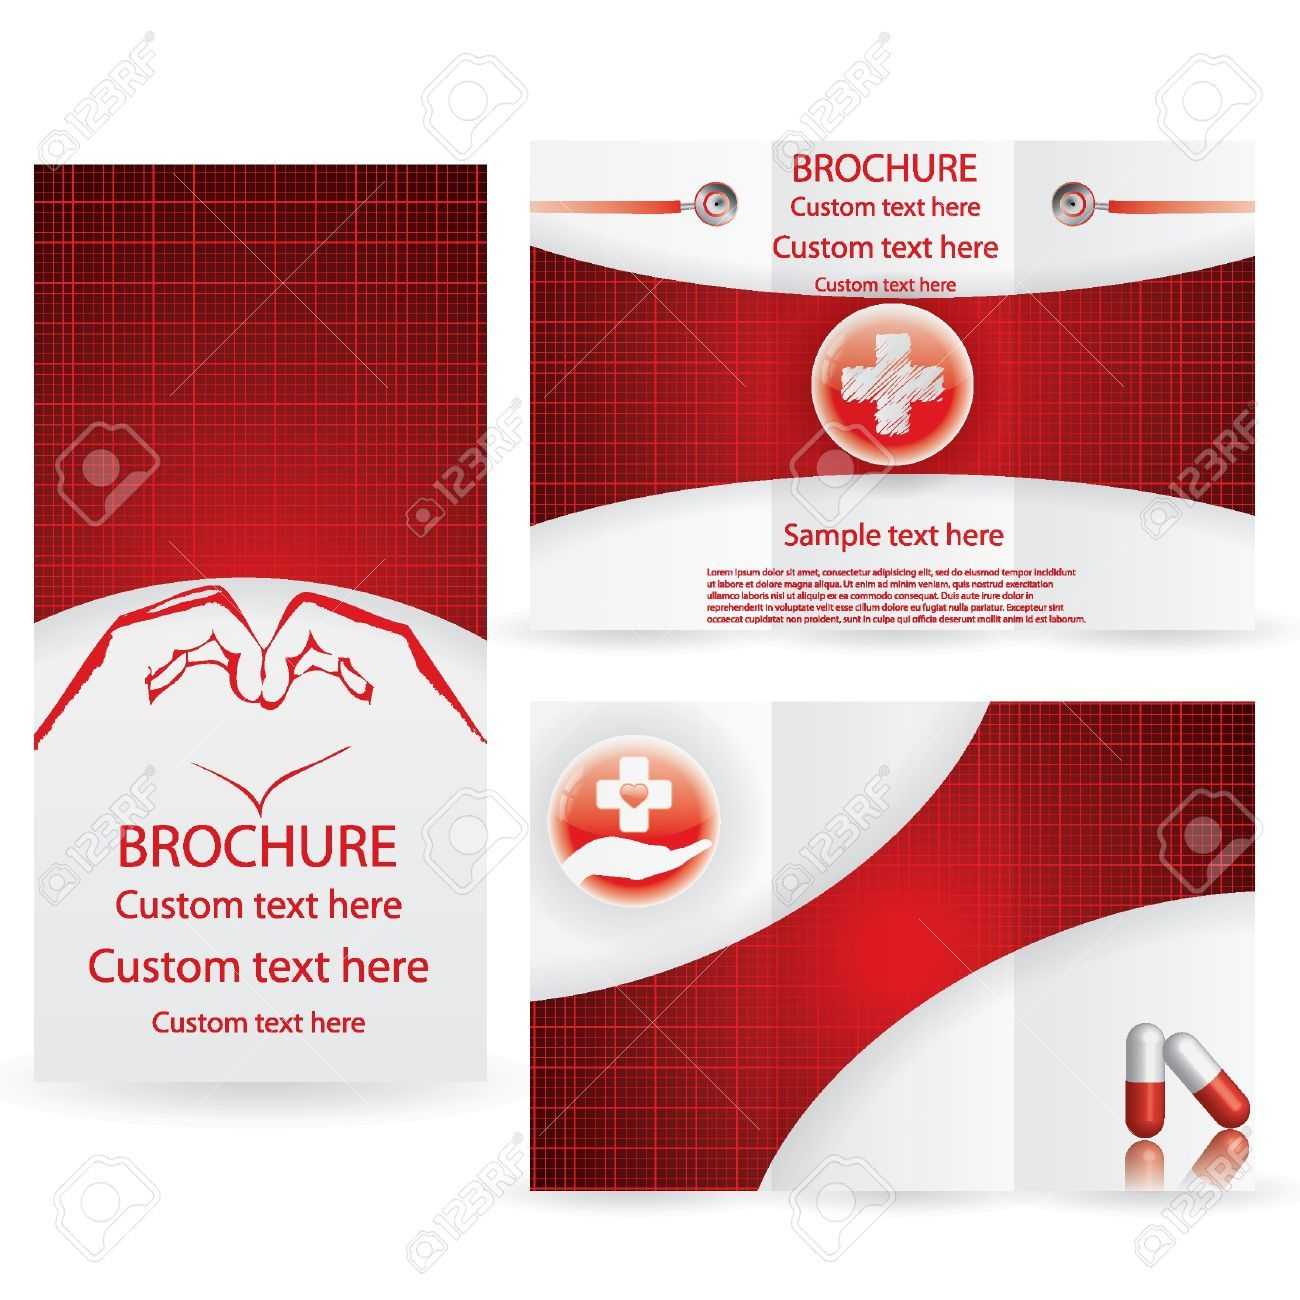 Vector Brochure Layout Design Template Red Medical Royalty Free  Medical Brochures Templates